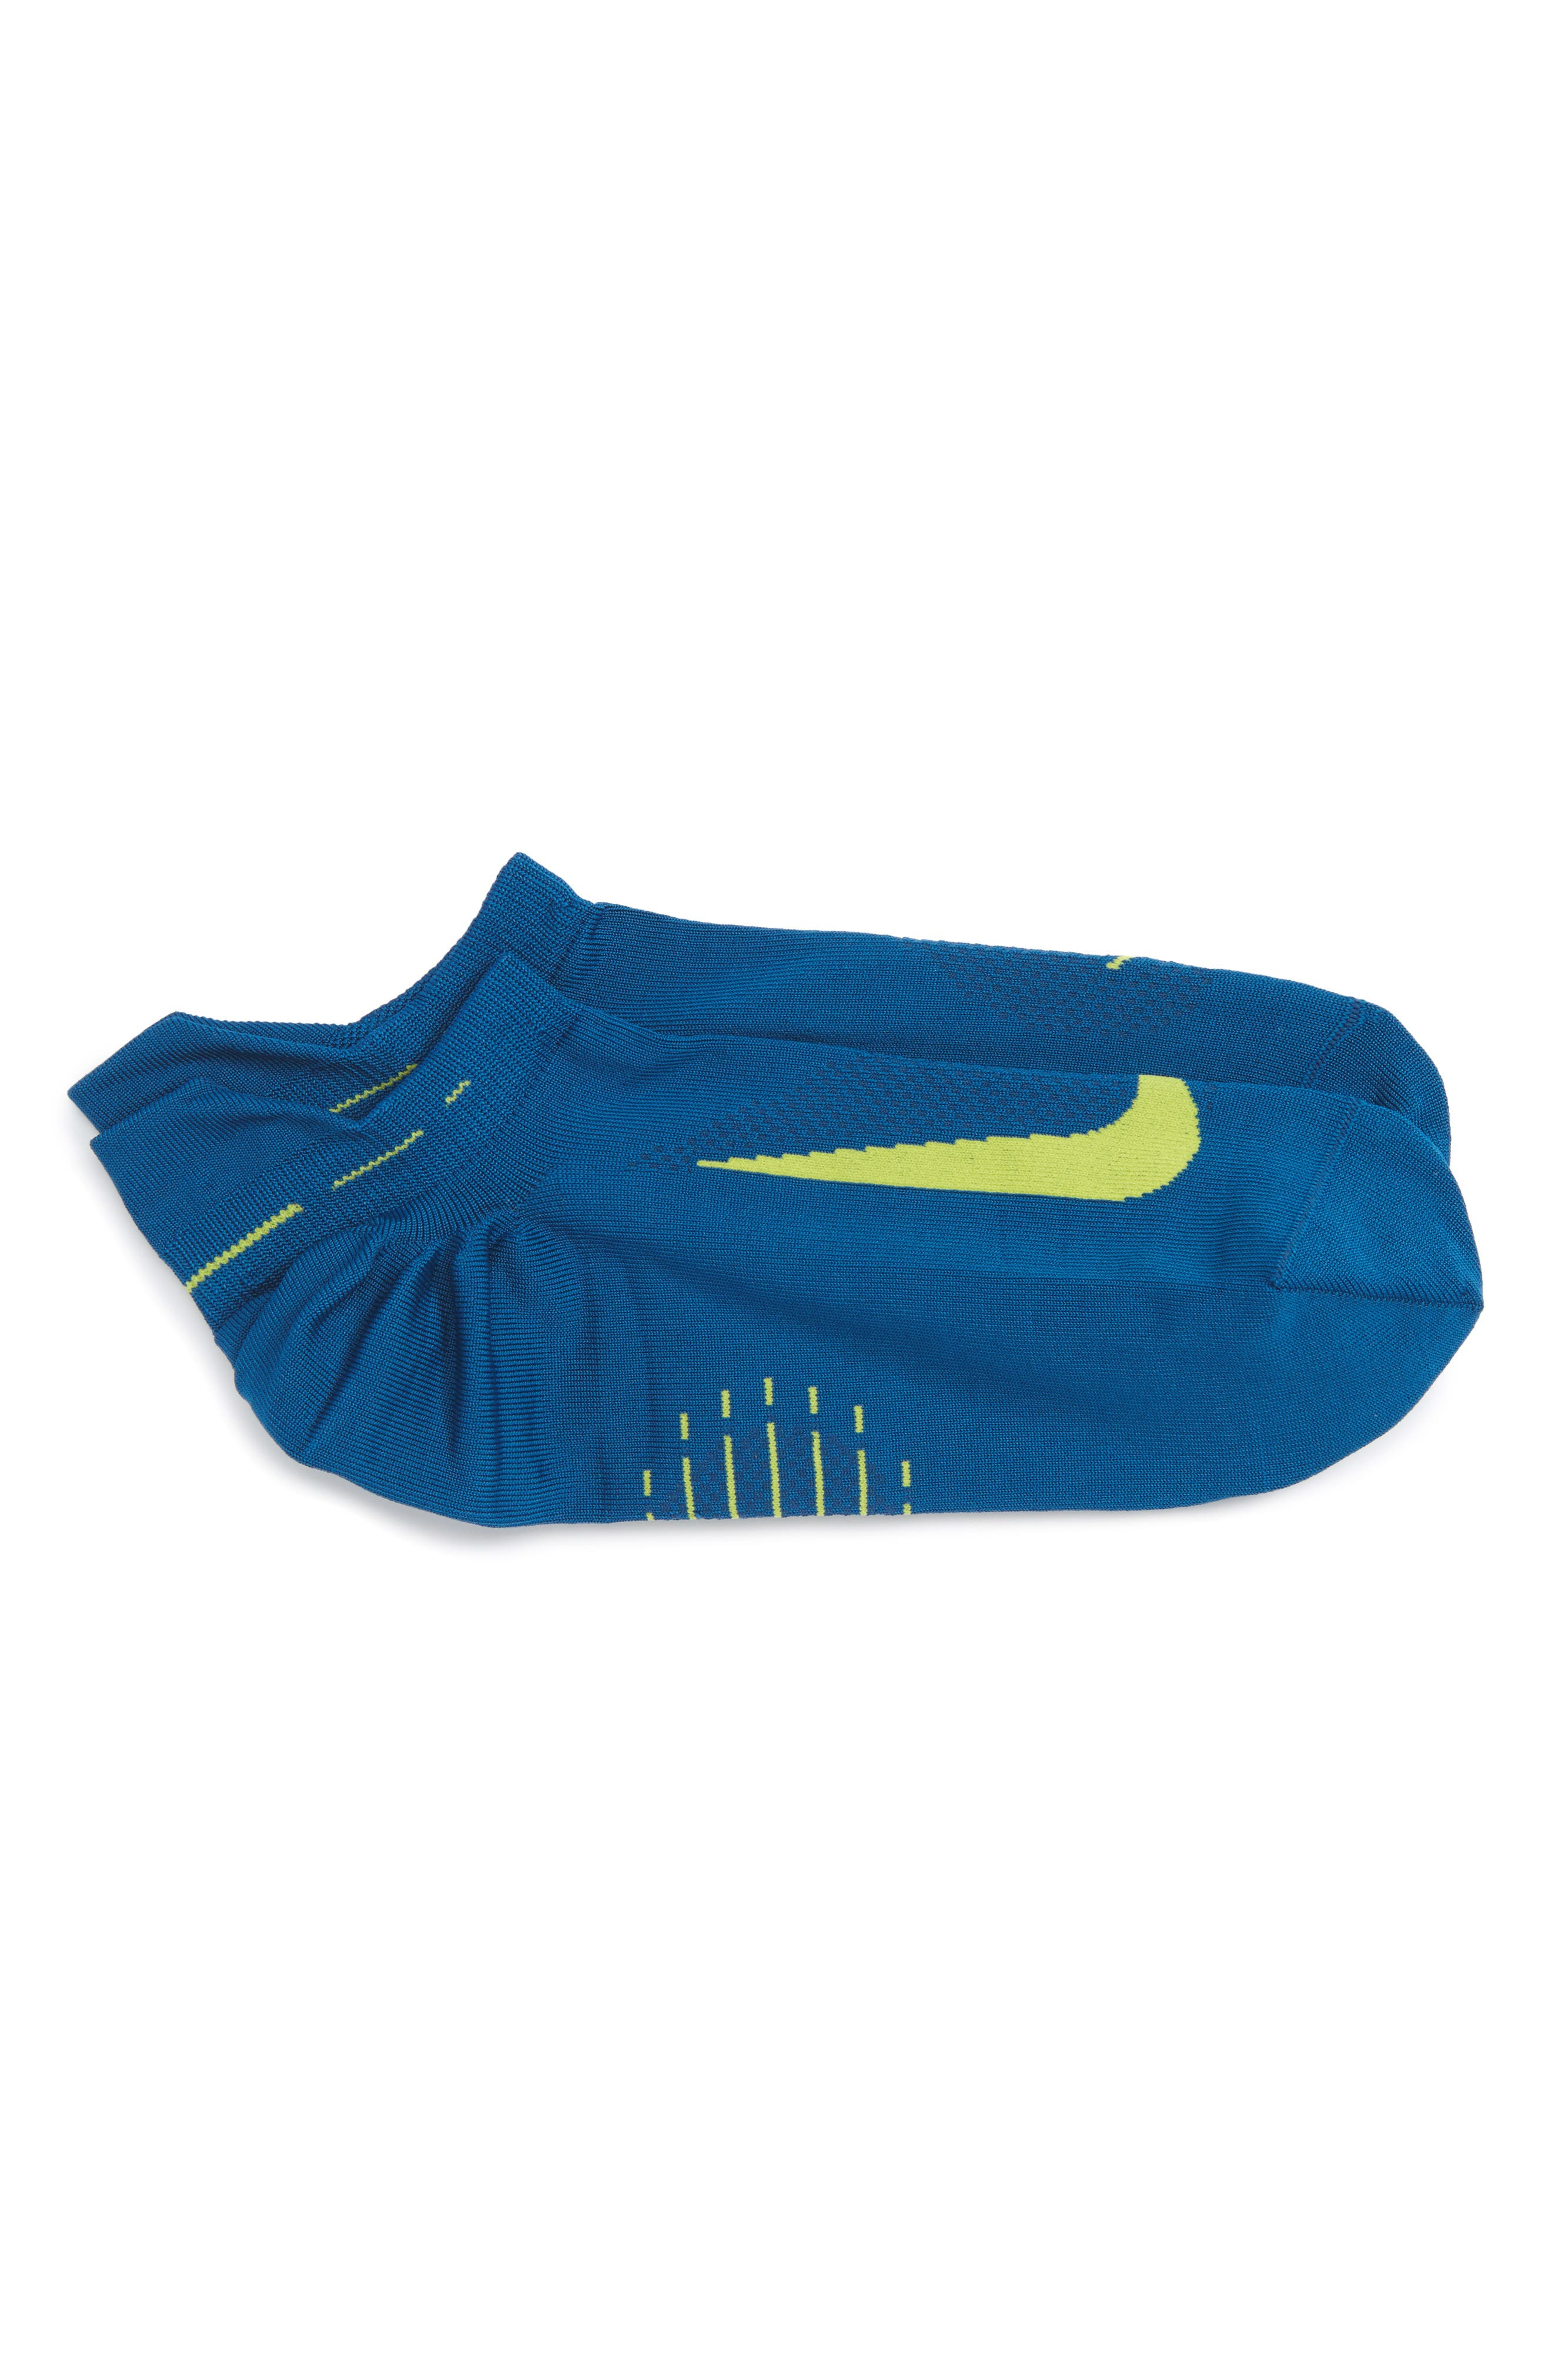 Alternate Image 1 Selected - Nike 'Elite' Lightweight No-Show Tab Running Socks